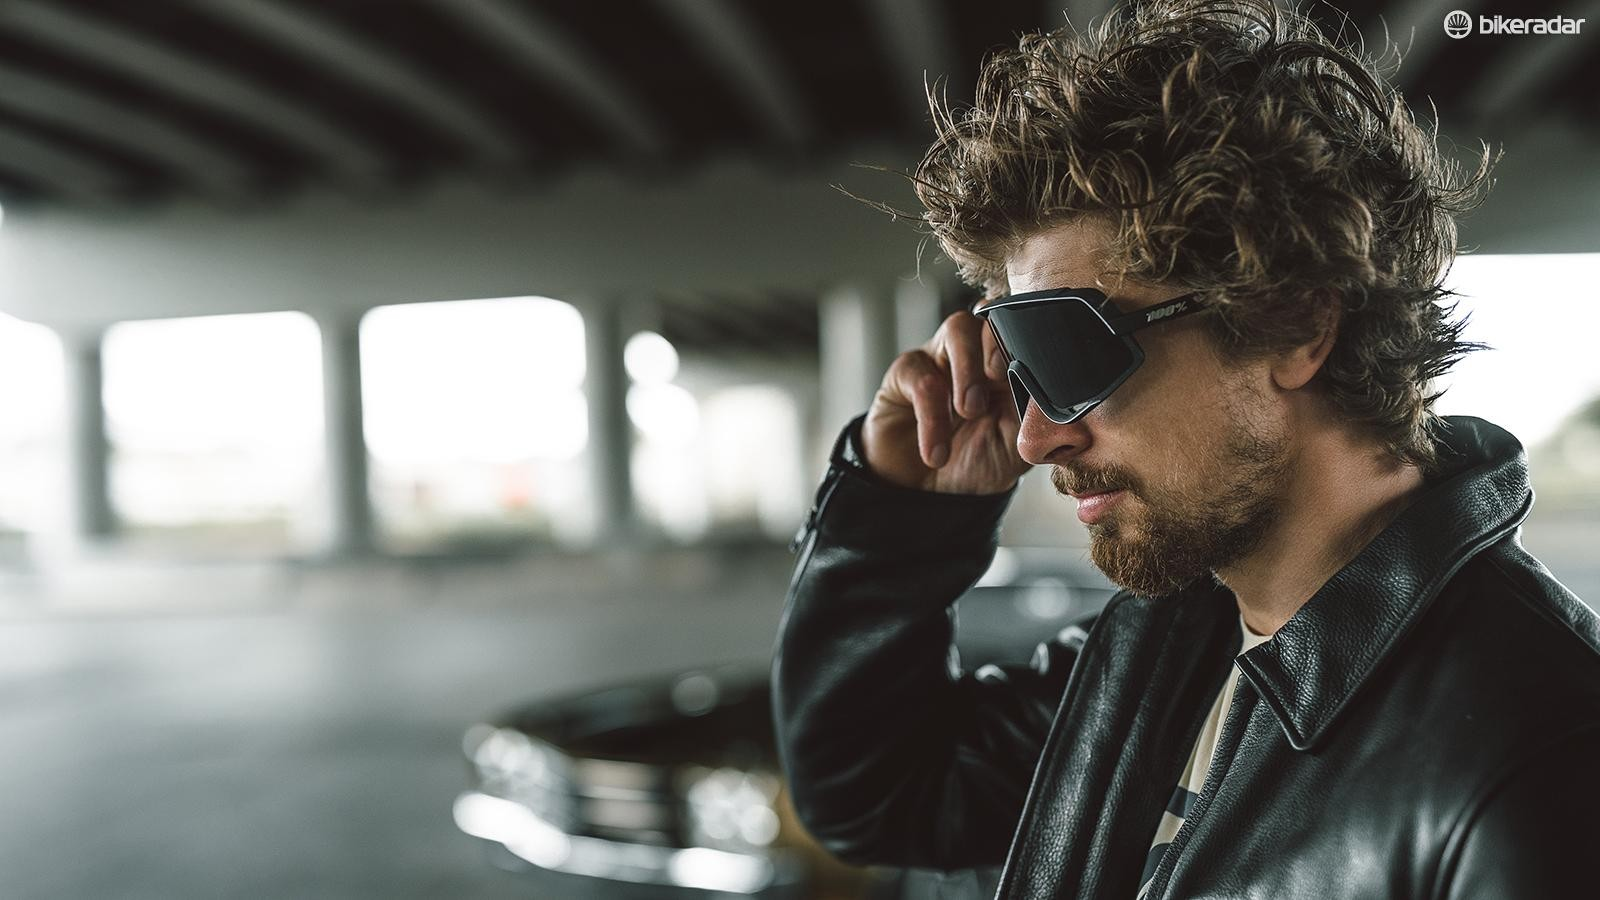 Peter Sagan and 100% launch new Glendale sunglasses